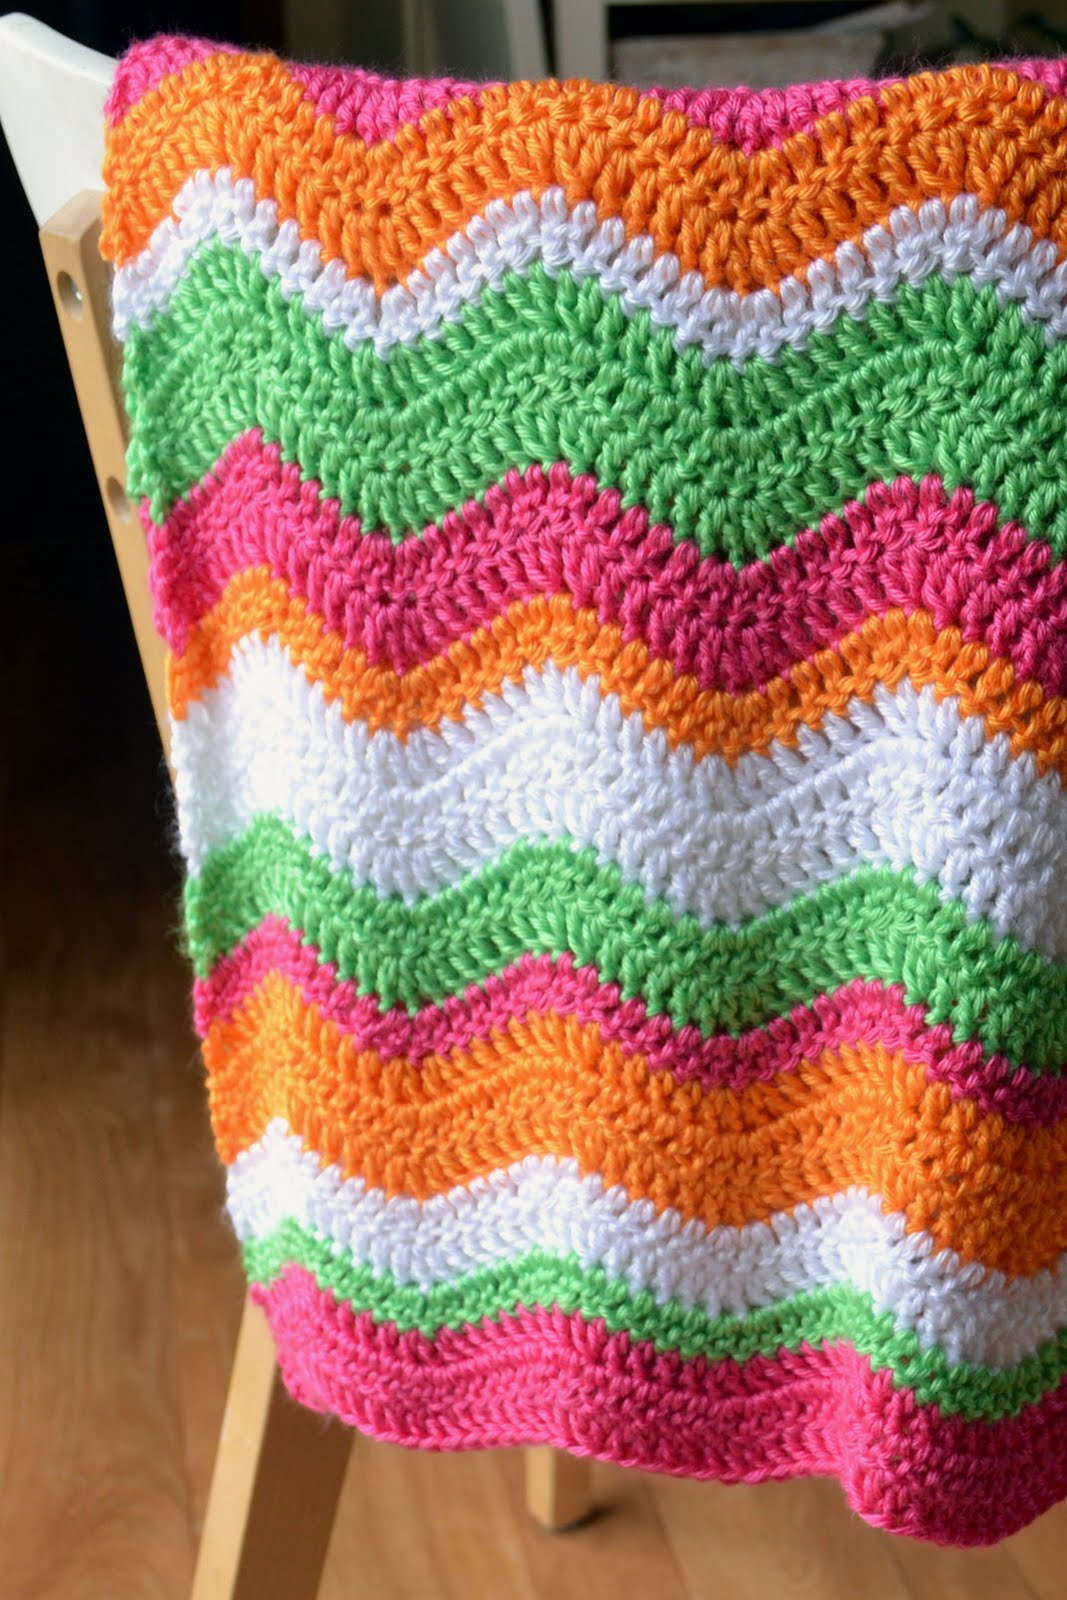 Crochet In Color Instructions For The Brite Baby Ripple